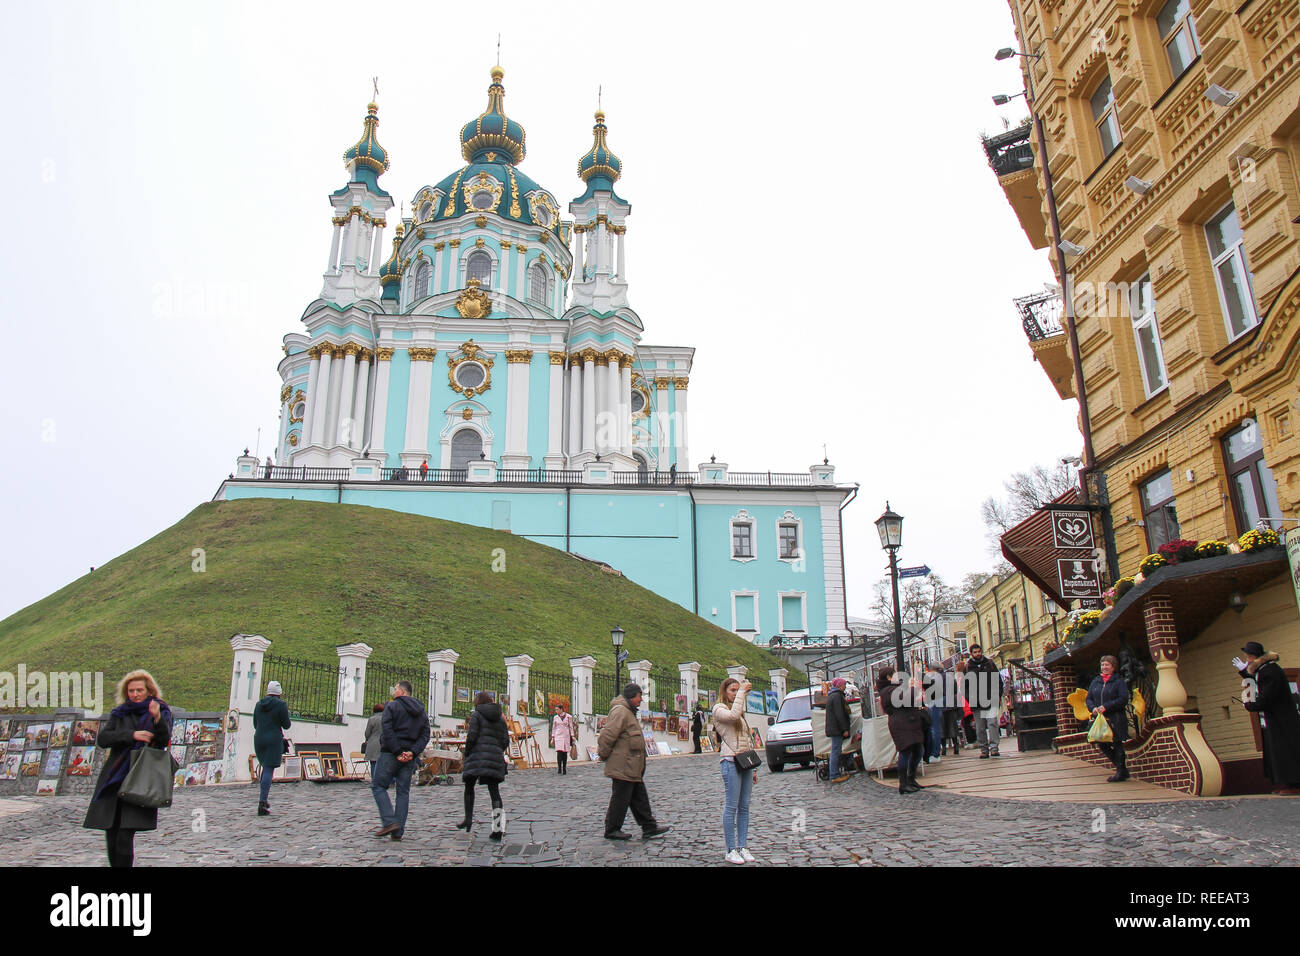 The City of Kyiv during winter - Stock Image